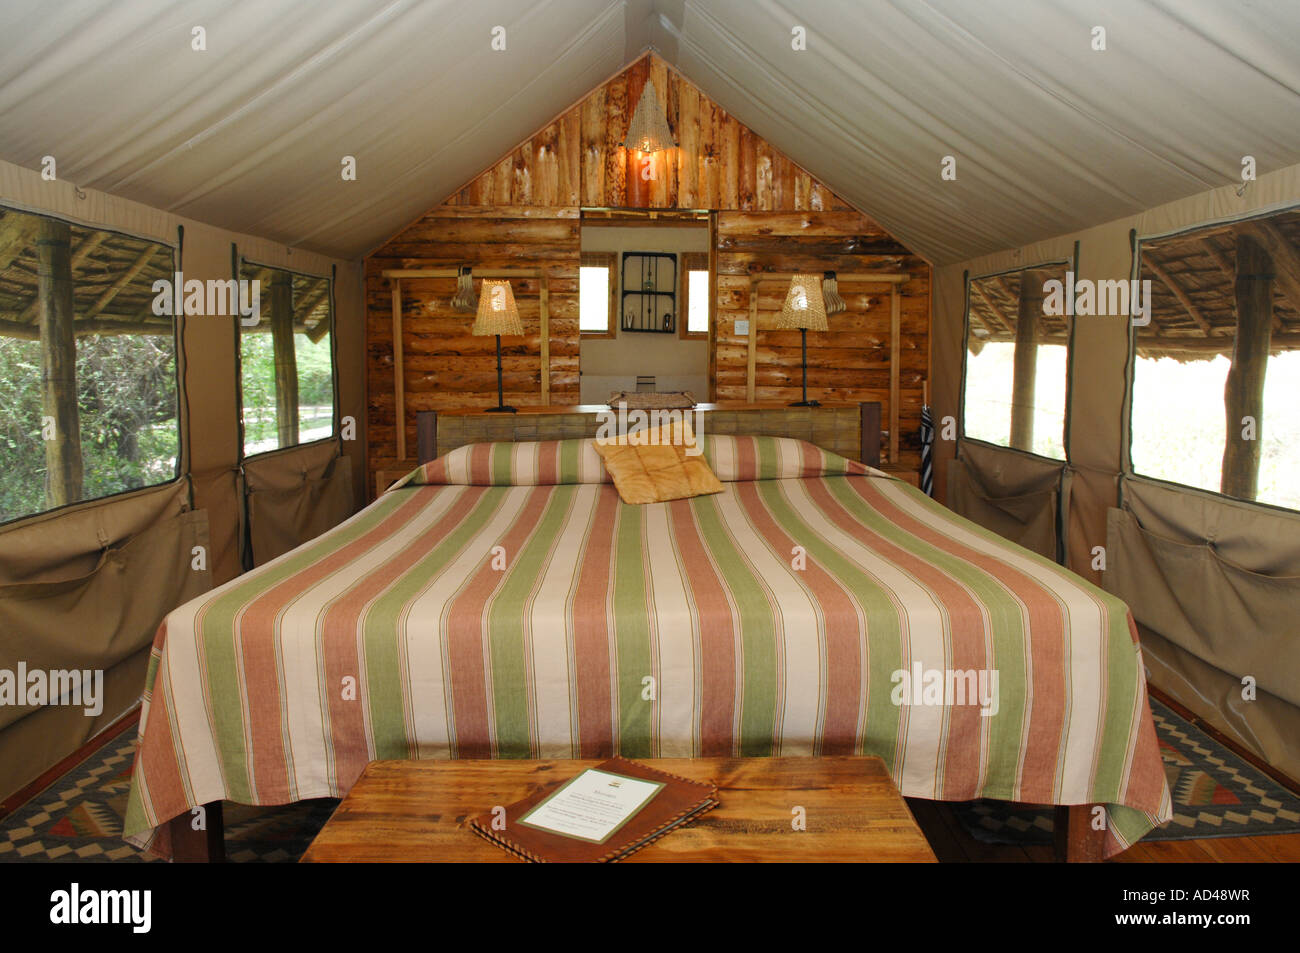 Guest marquee, Tortilis Camp, Amboseli National Park, Kenya, Africa Stock Photo